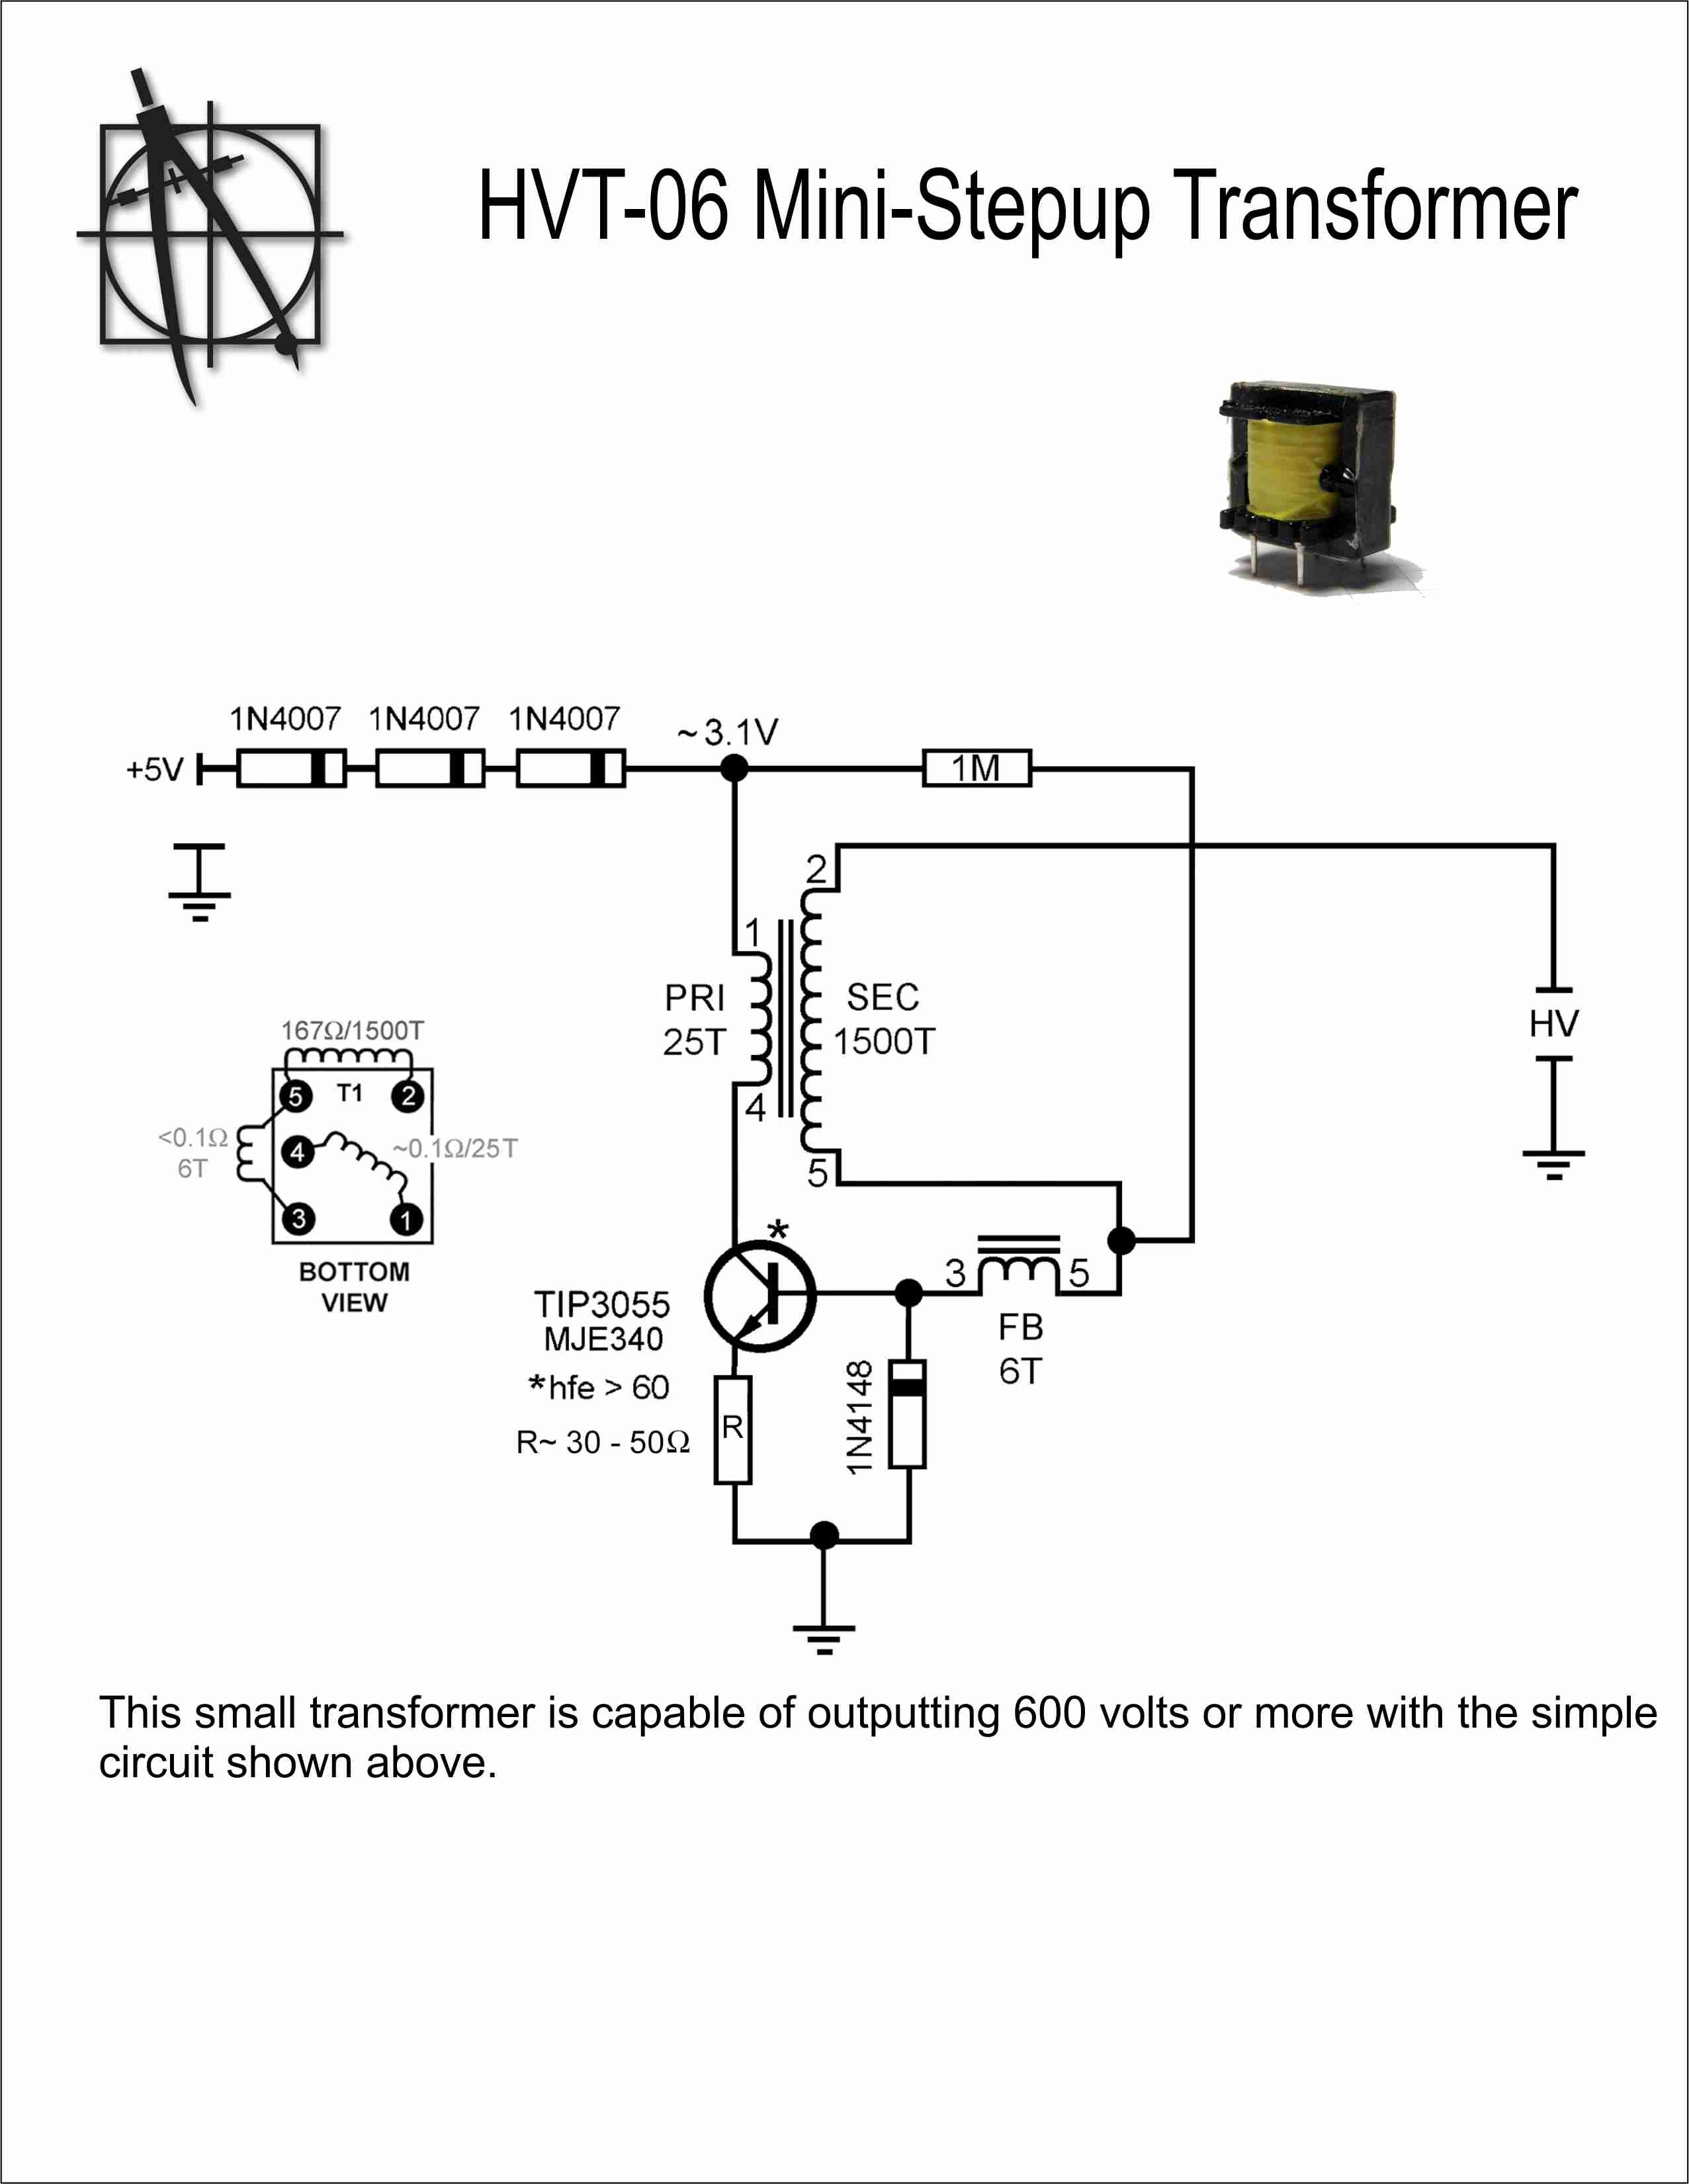 How to Wire A Transformer Diagram High Voltage Mini Step Up Transformer Wiring Diagram Ponents Of How to Wire A Transformer Diagram